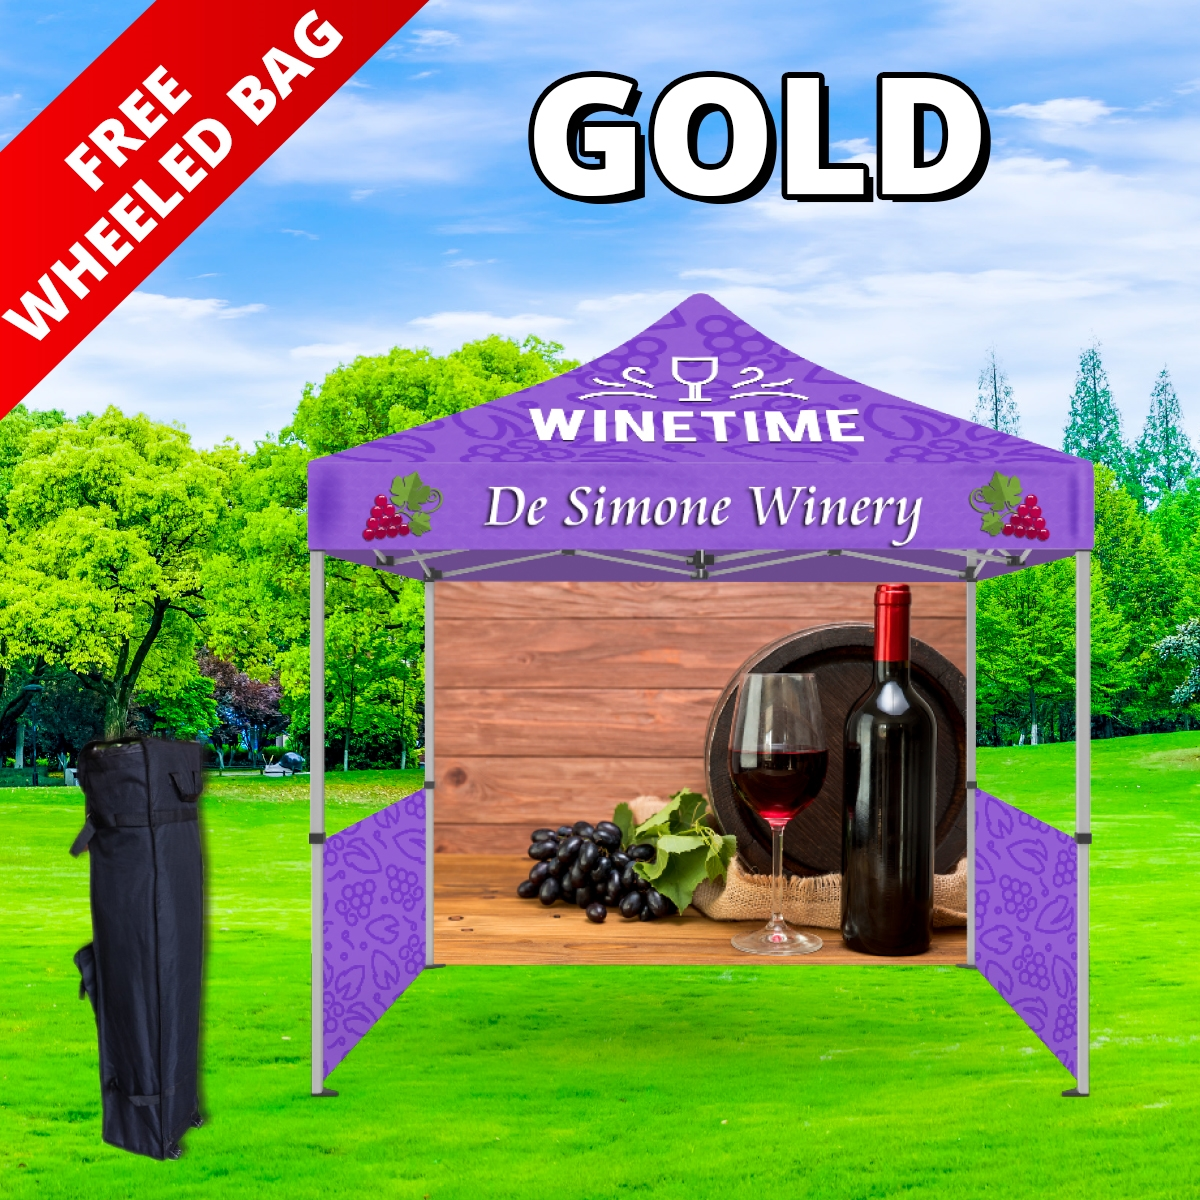 Gold Tier Event Package - 10Ft. Steel Tent with Full Color Dye Sublimated (1) Canopy, (1) Back Wall and (2) Side Walls with (2) Rails (1) Free Wheeled Bag